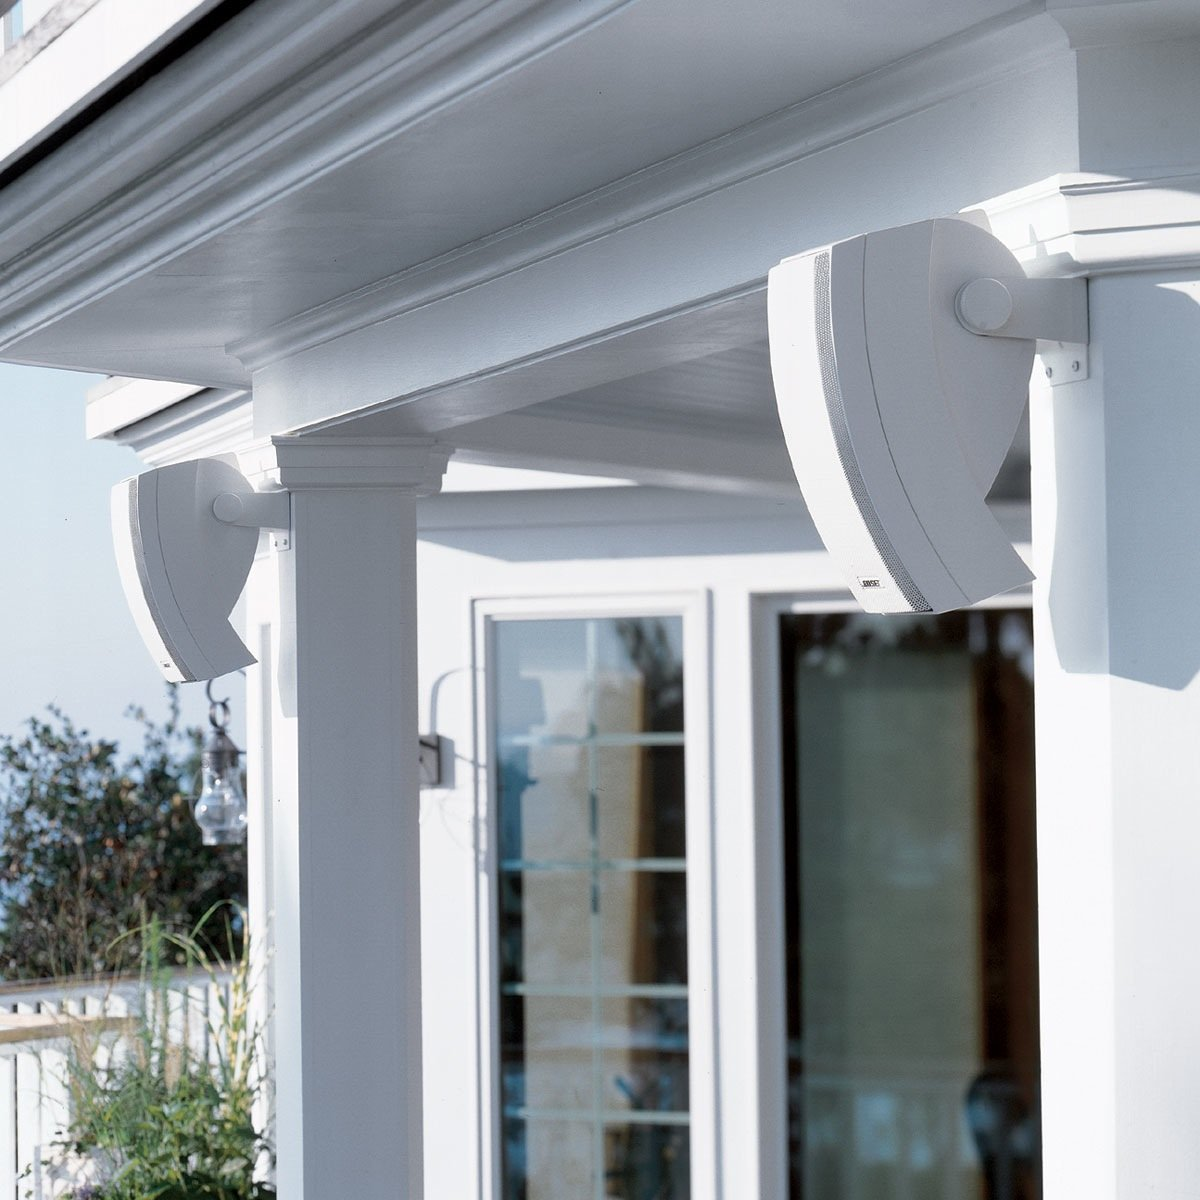 Tips and Tricks When Using Outdoor Speakers